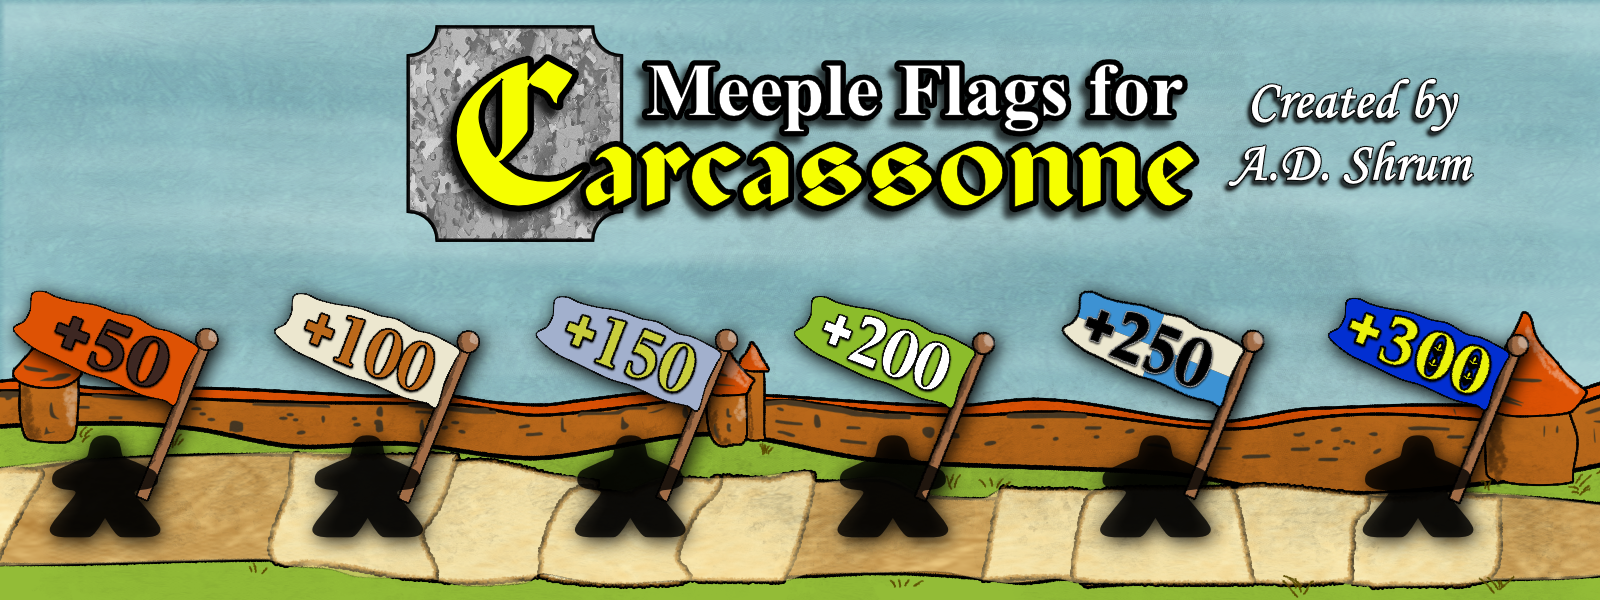 Meeple Flags for Carcassonne